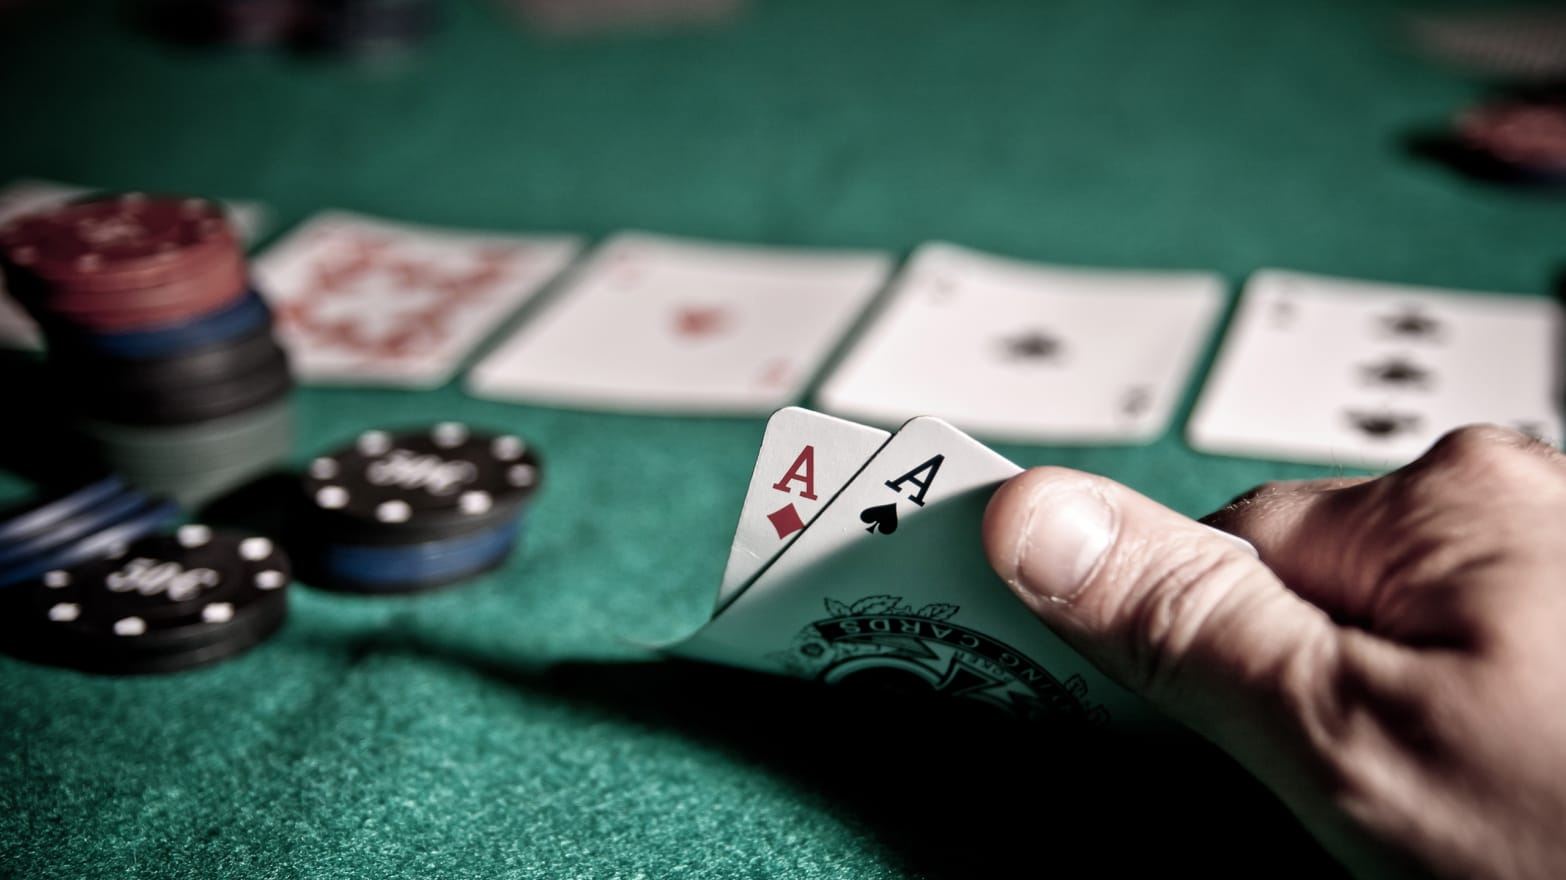 Things to Watch Out Before Making Any Deposit at Online Casinos